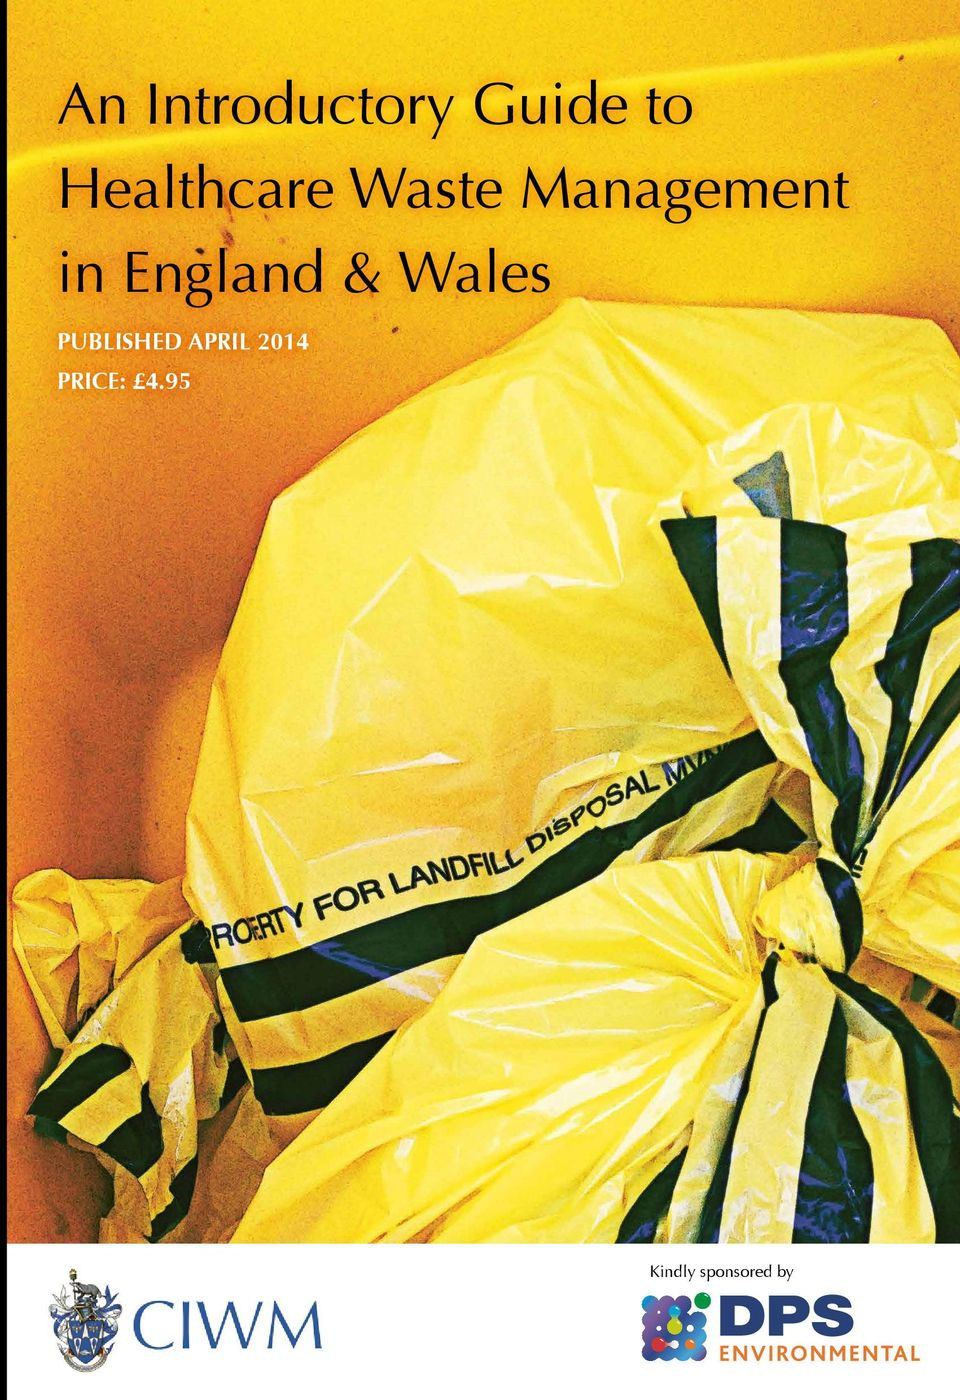 England & Wales PUBLISHED